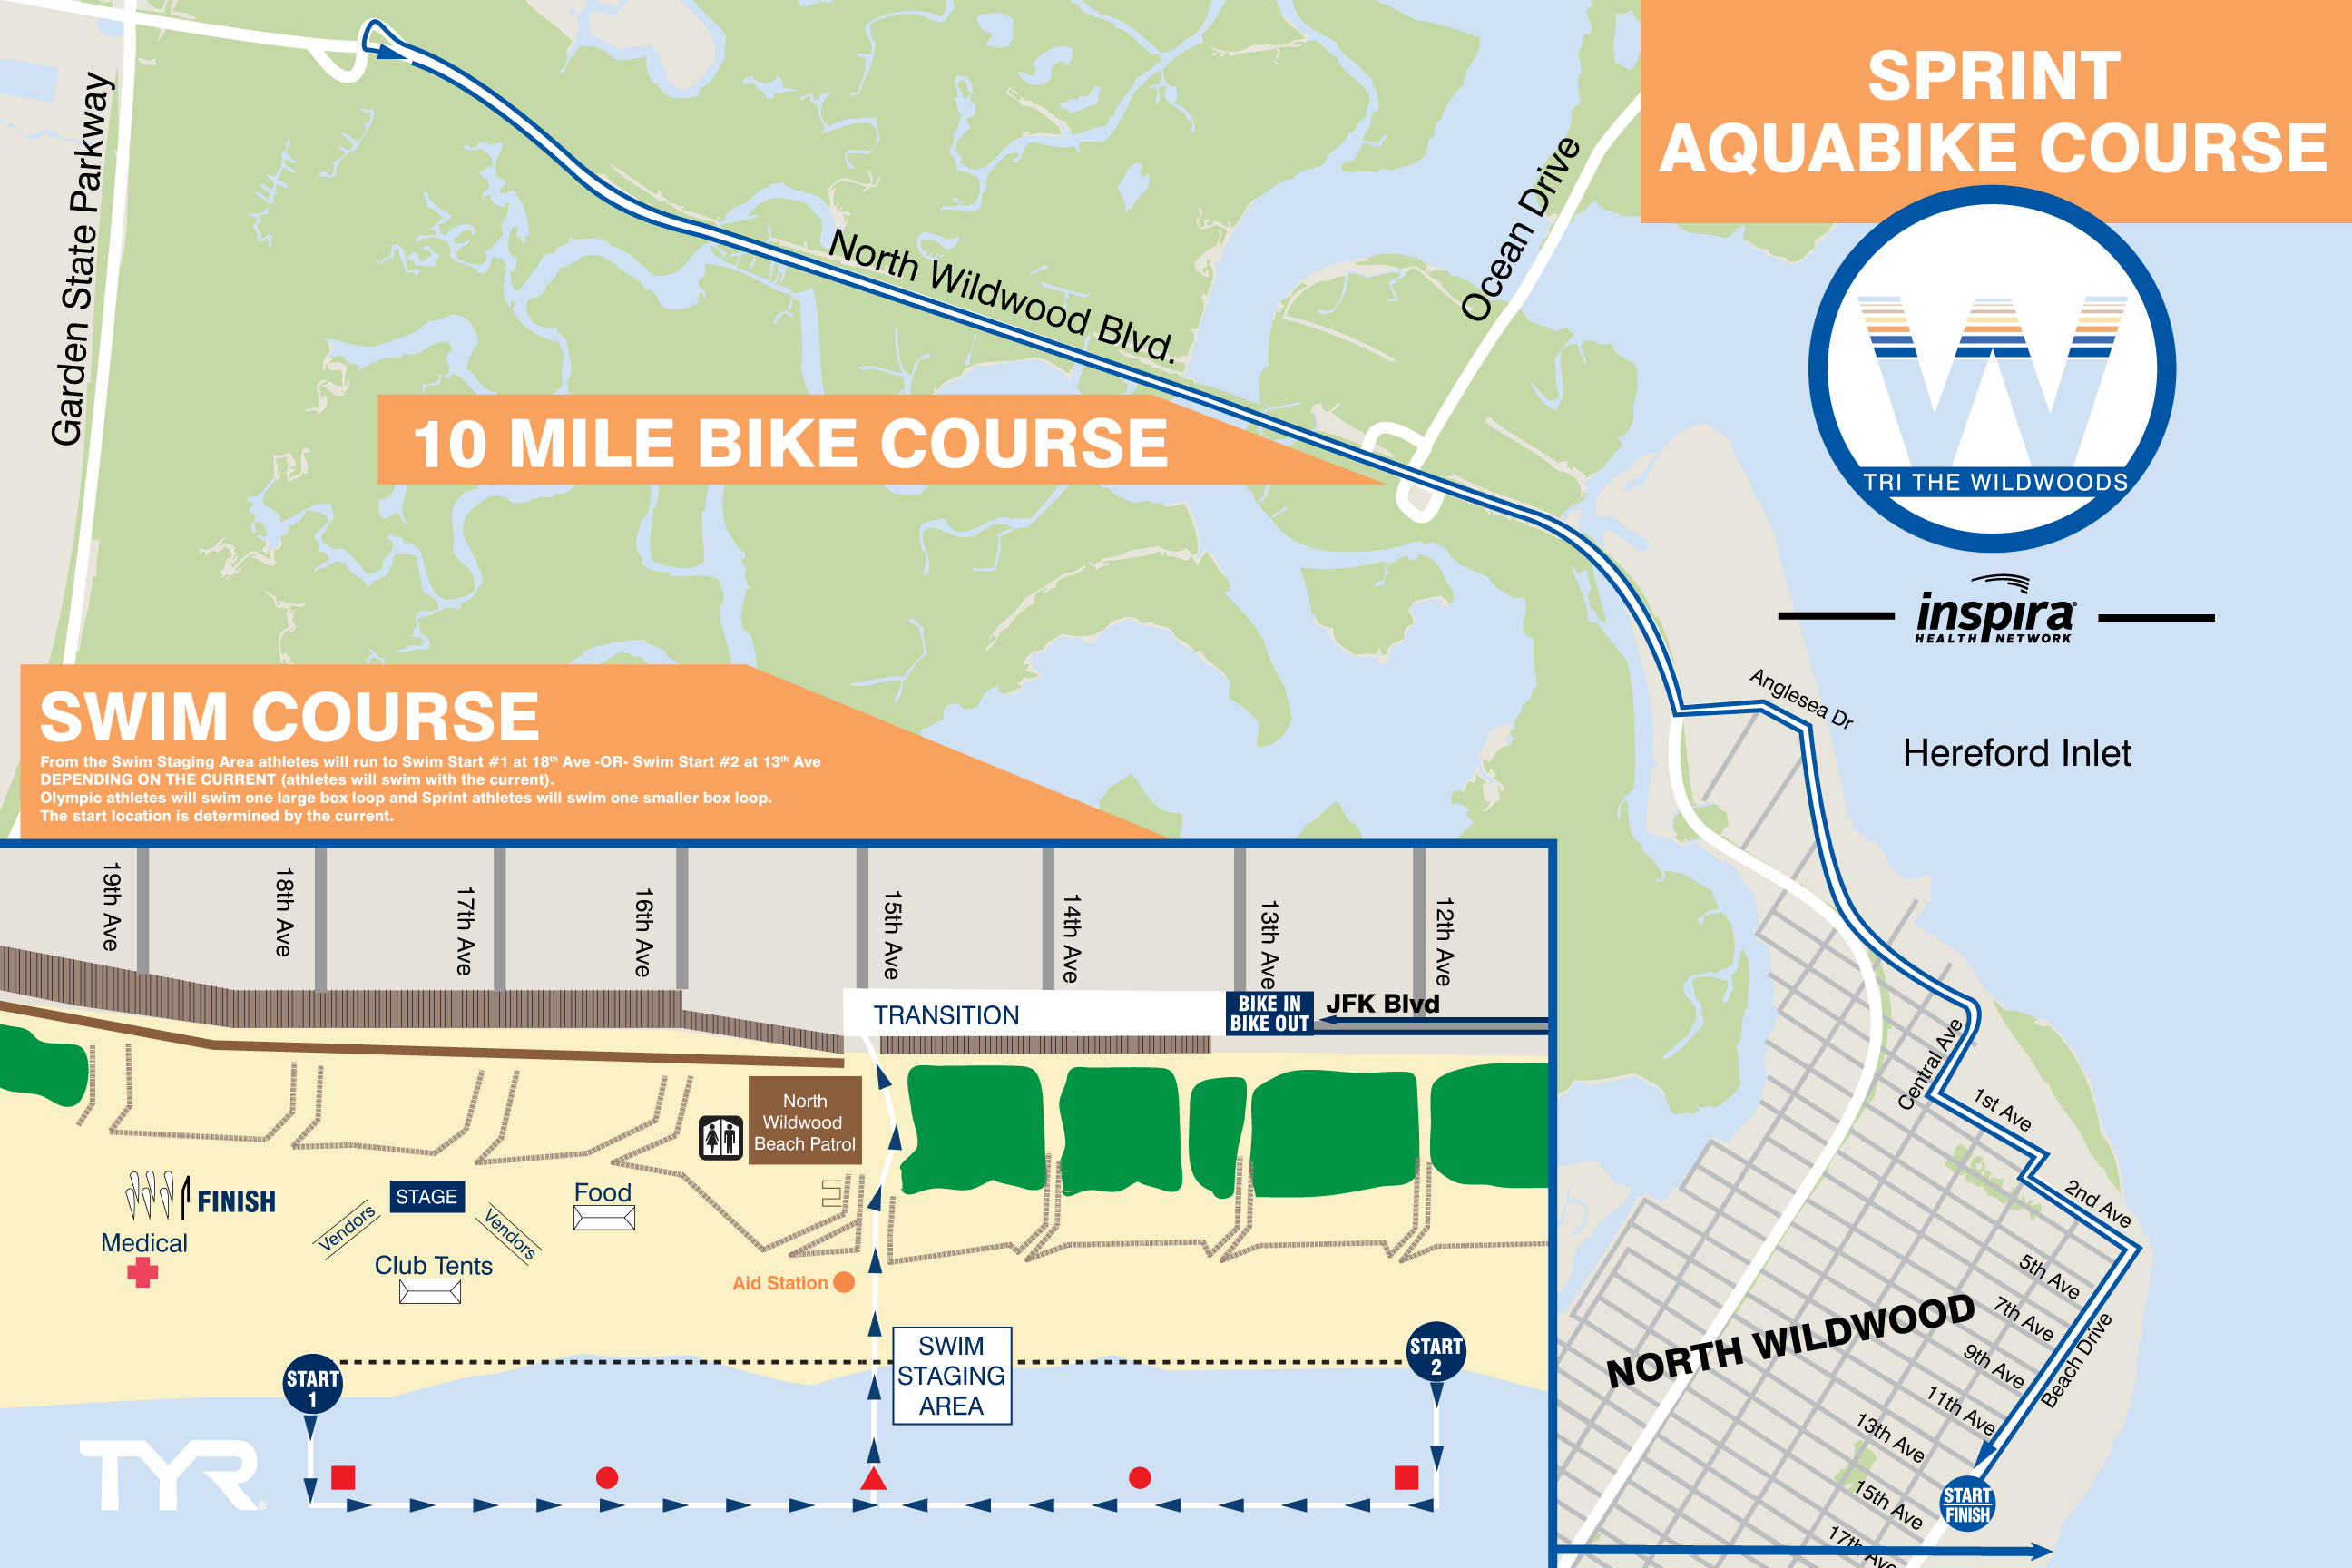 Aquabike Sprint Course